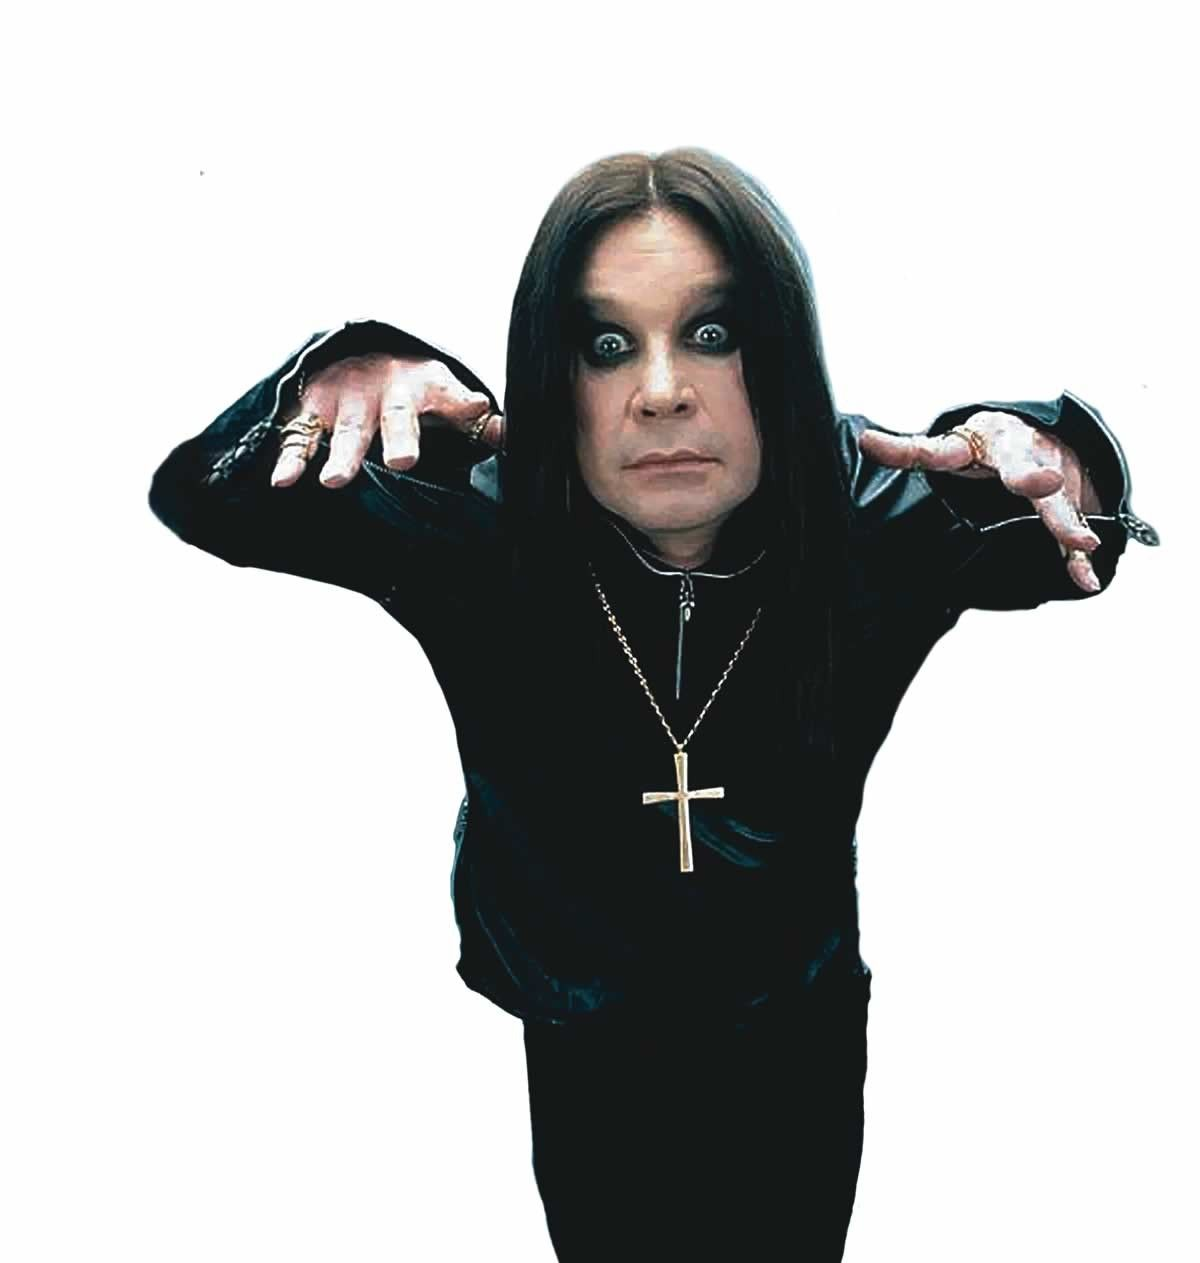 Pin by Beren Goguen on Music | Pinterest | Ozzy osbourne, TVs and Movie